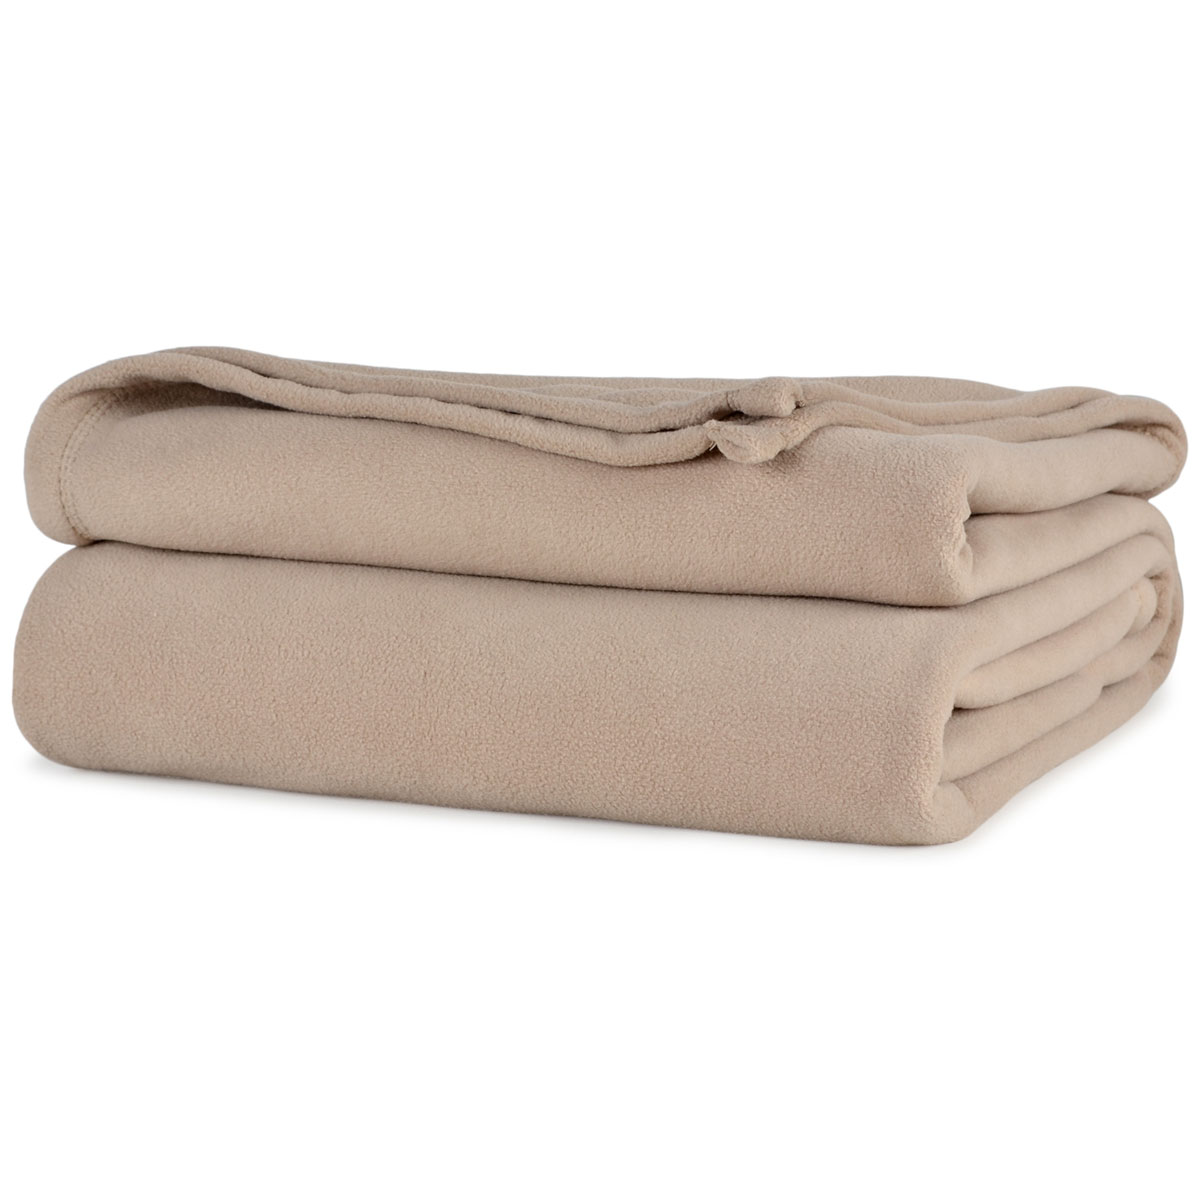 Berkshire Microloft Blanket 240 Gsm Full Queen 90x90 12